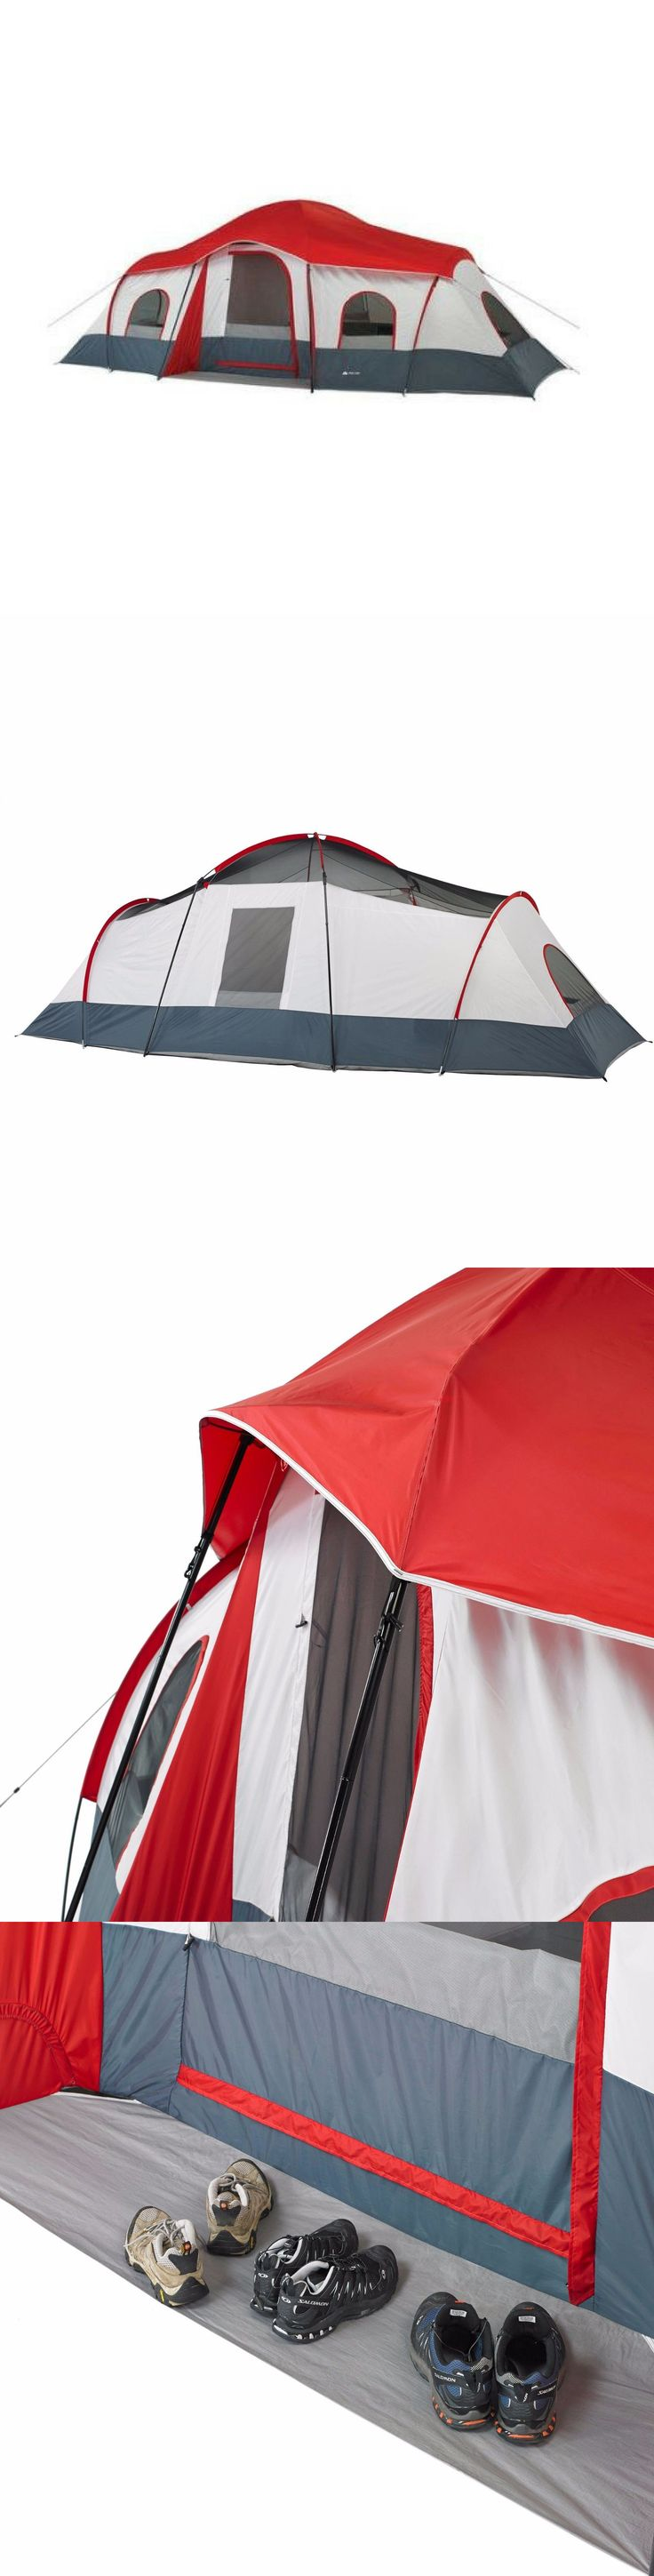 Canopies and Shelters 179011: Ozark Trail 3 Room 10 Person Family Instant Cabin Tent Outdoor Camping Hiking -> BUY IT NOW ONLY: $117.11 on eBay!